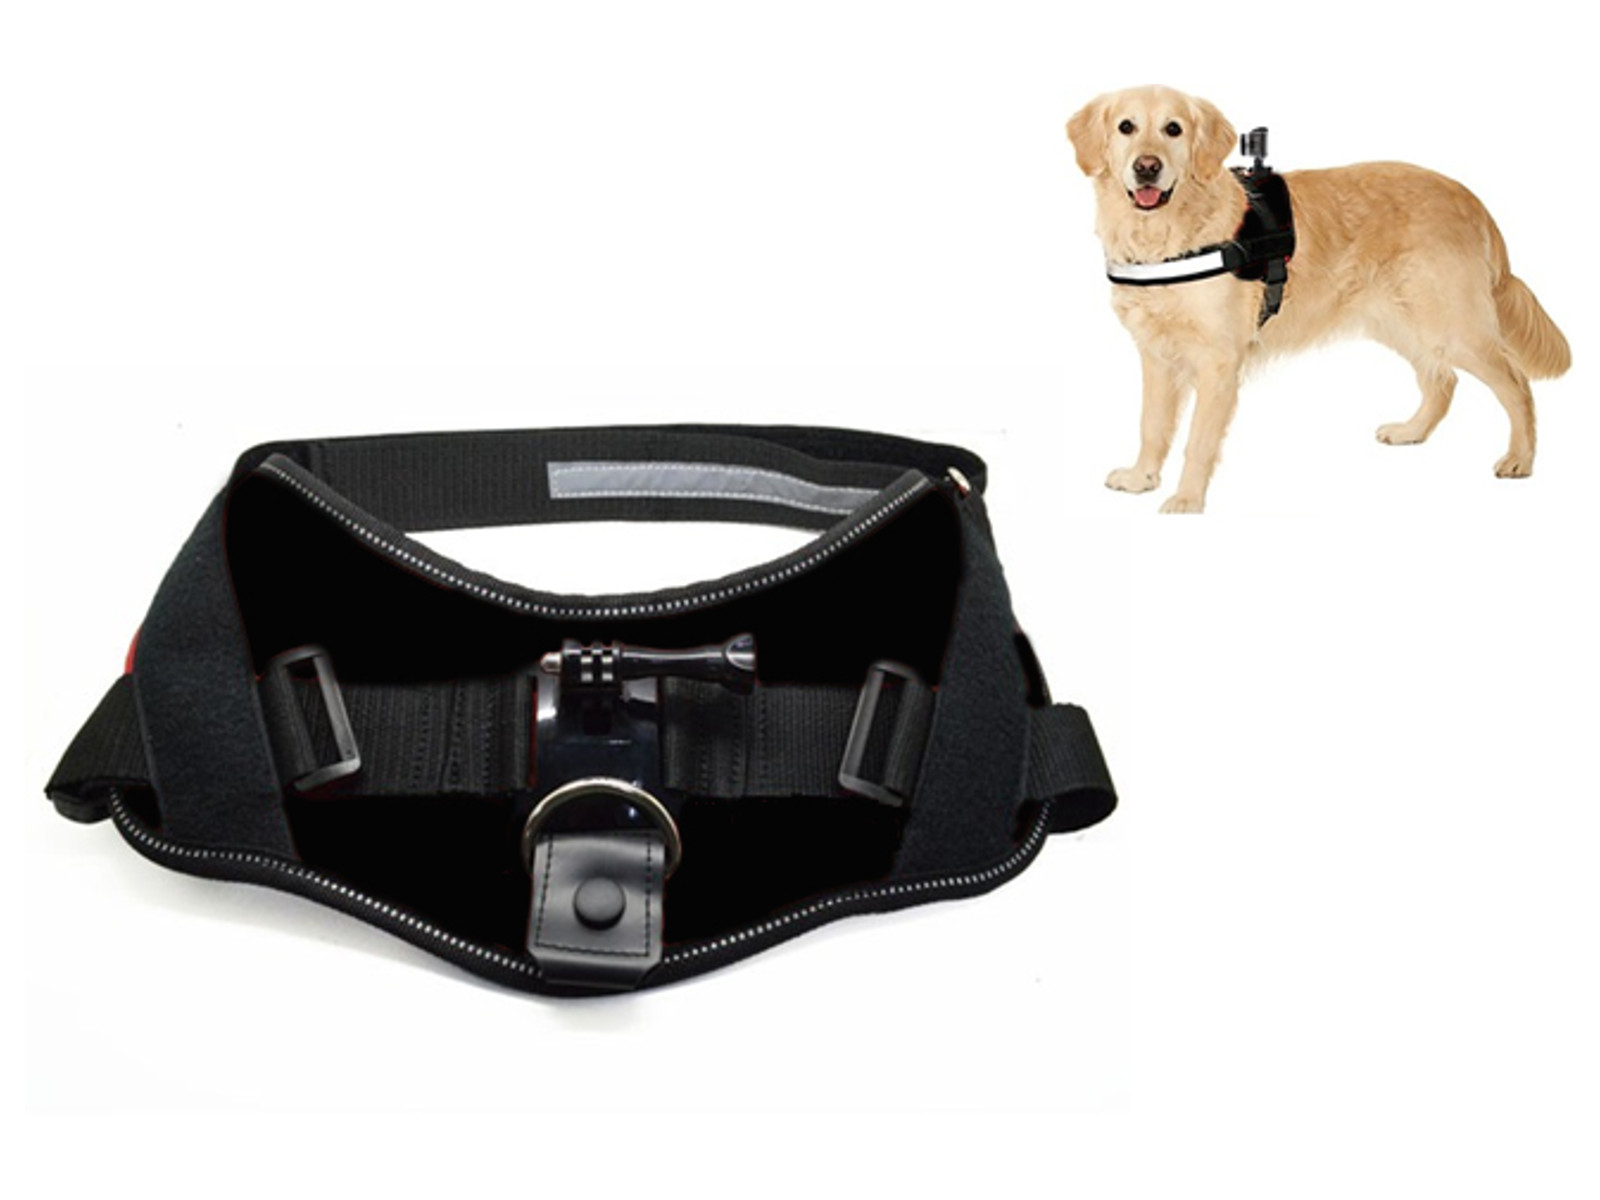 ACTIVEON ACM09DV ACM09DV, DOG HARNESS, DOG, 360, BLACK